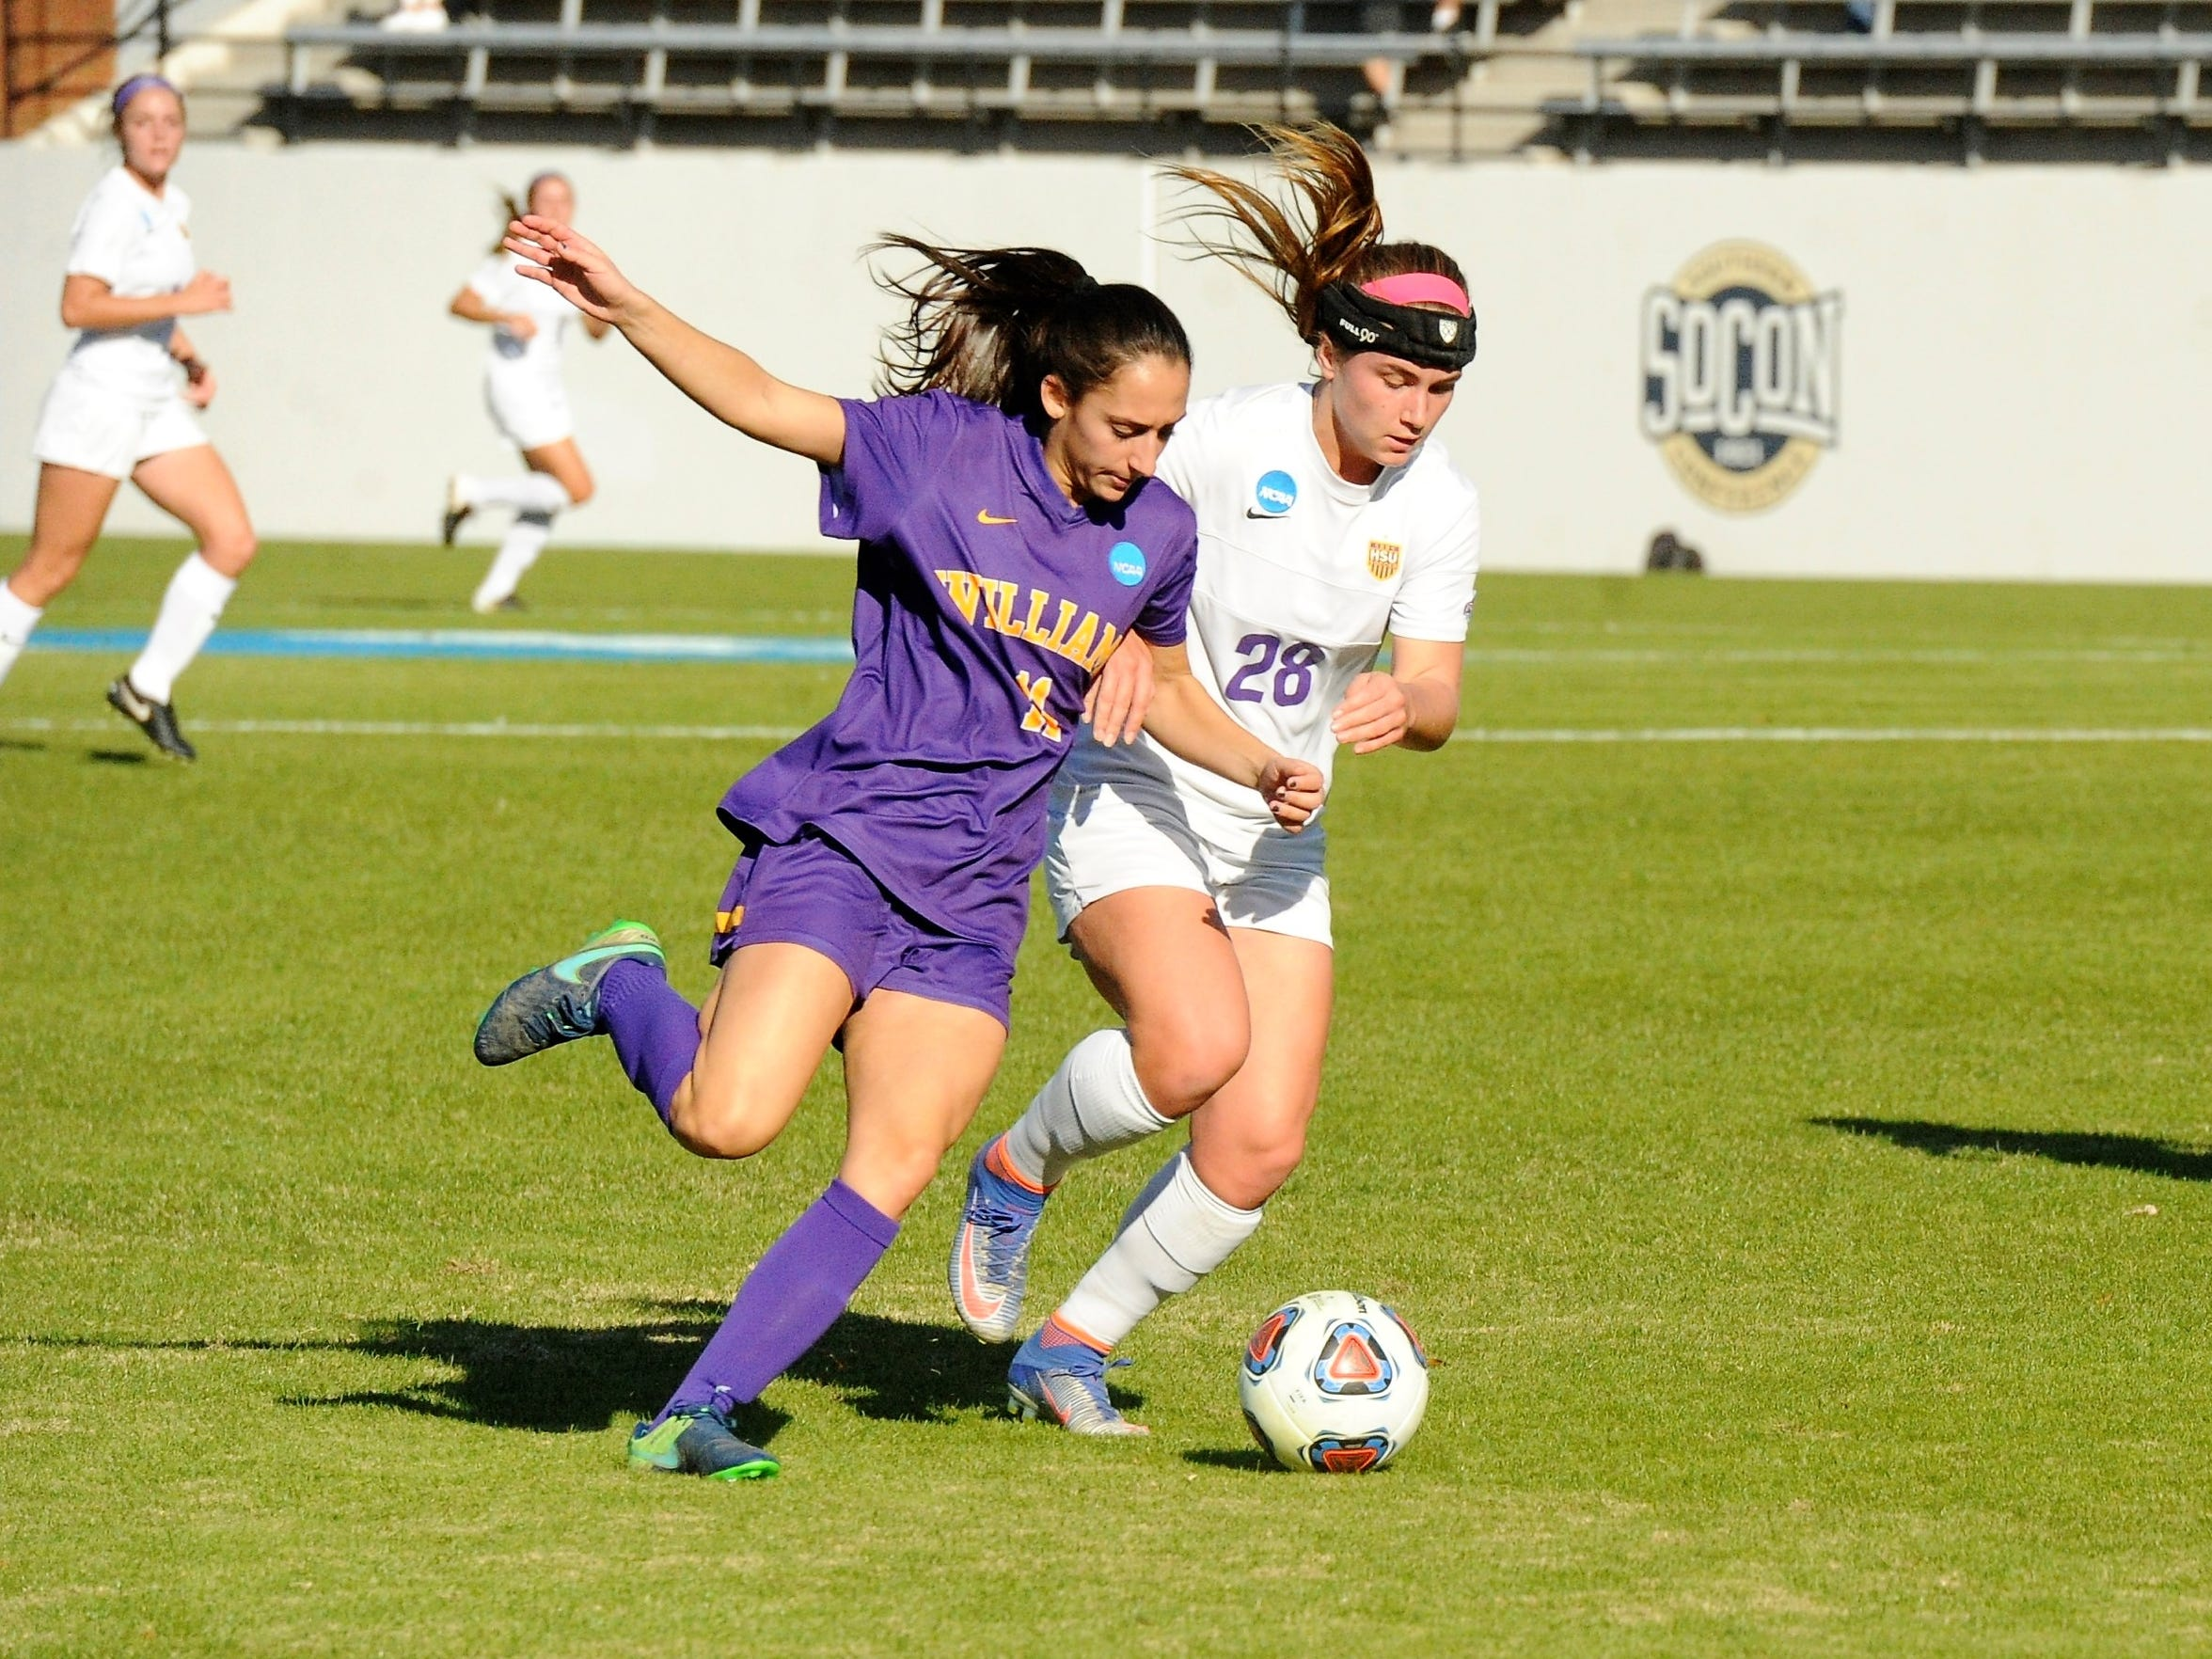 Hardin-Simmons forward Kenne Kessler, right, battles with Williams' Sarah Scire during the 2017 NCAA Division III Final Four appearance. Kessler left the Cowgirls as the program's all-time leading goal scorer.